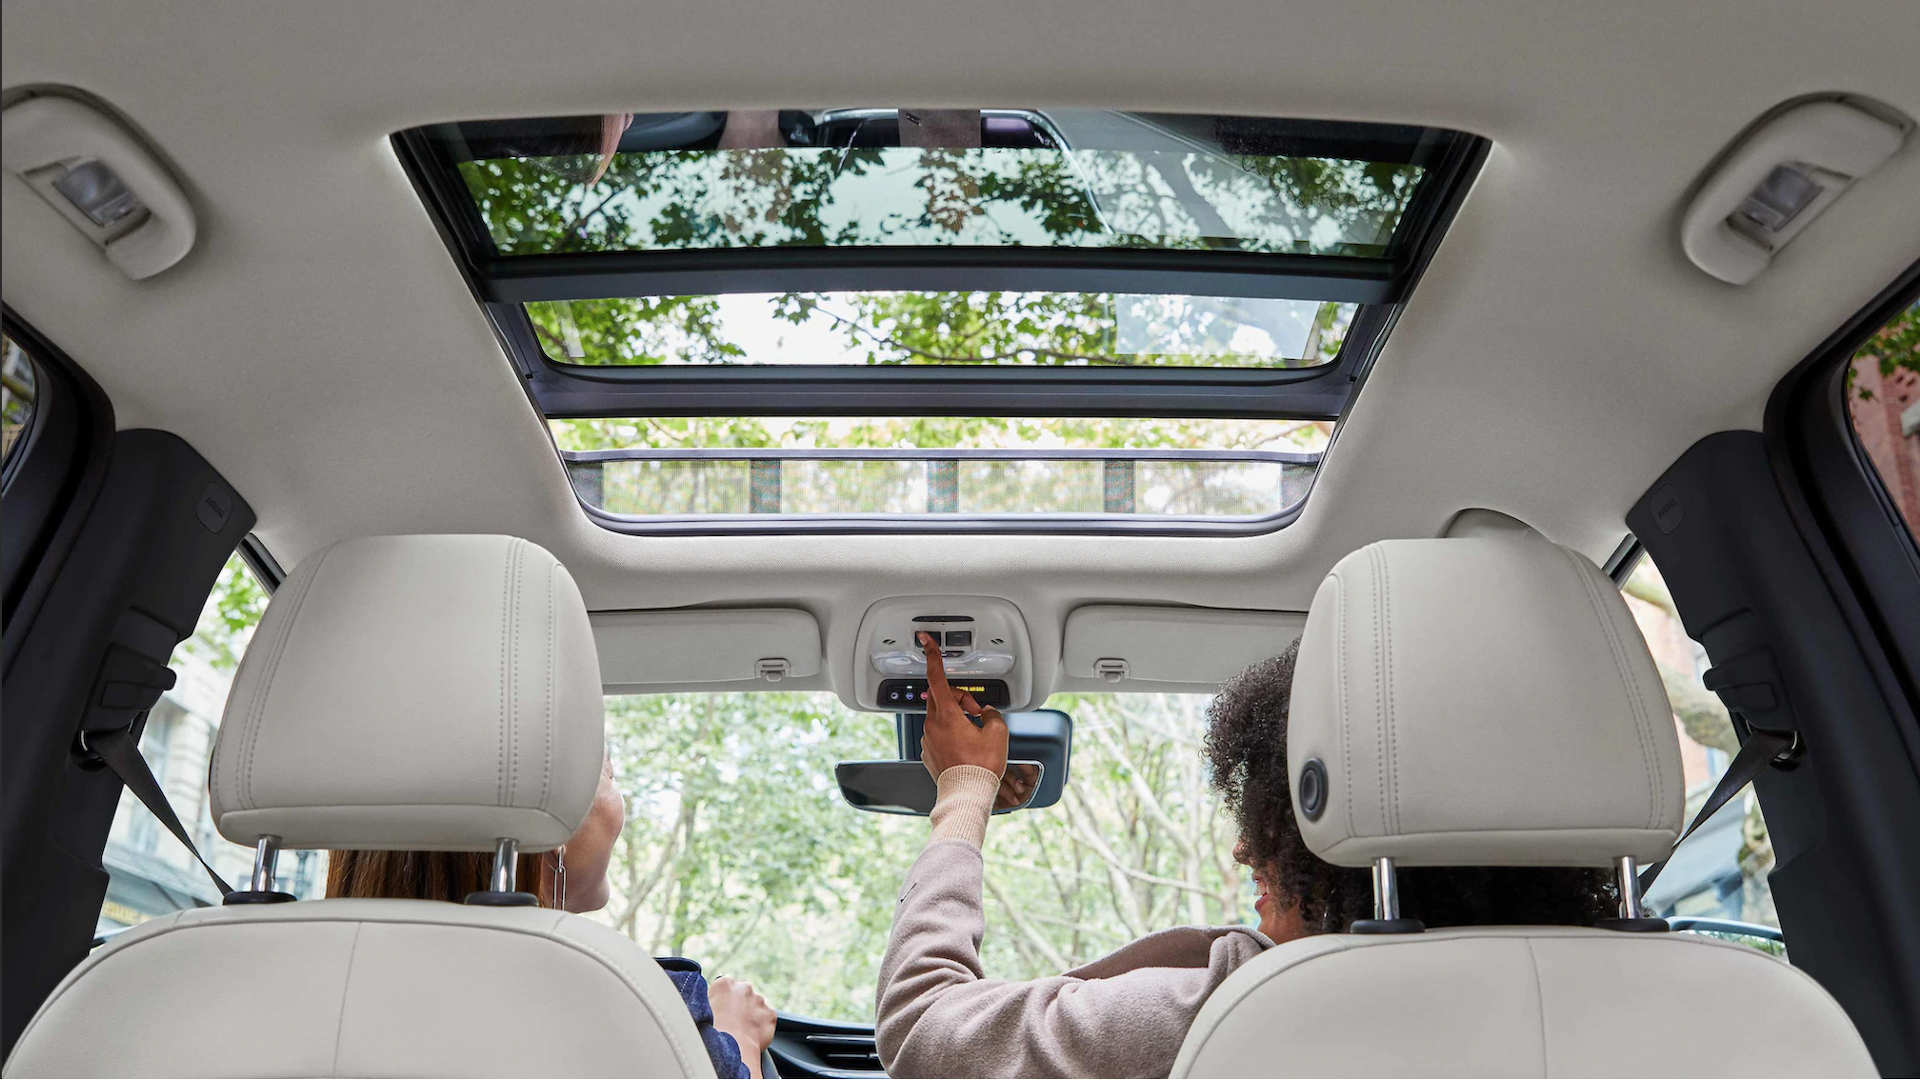 The 2021 Buick Encore has a panoramic sunroof option available